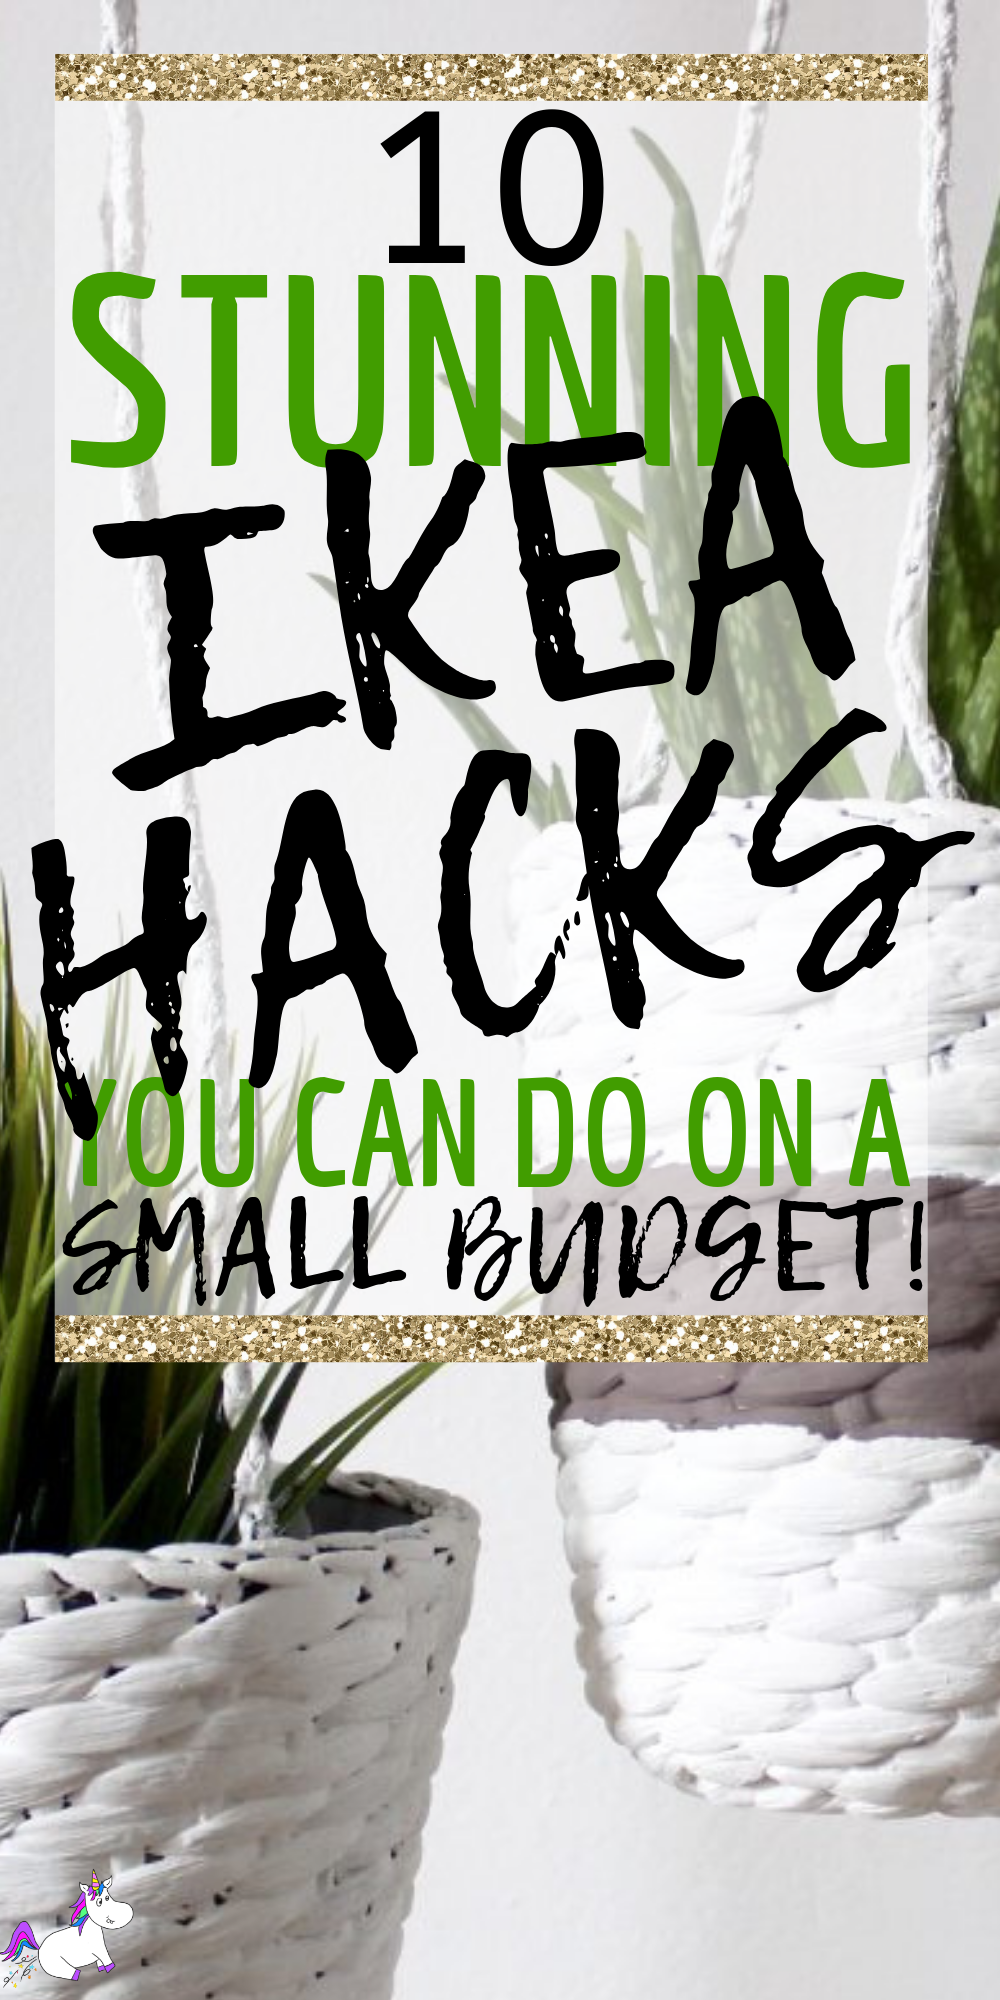 10 Stunning Ikea Hacks For Every Room In Your Home For People Who Love DIY Home Decor On A Budget! #ikeahacks #homedecoronabudget #diyhomedecor #diyhacks